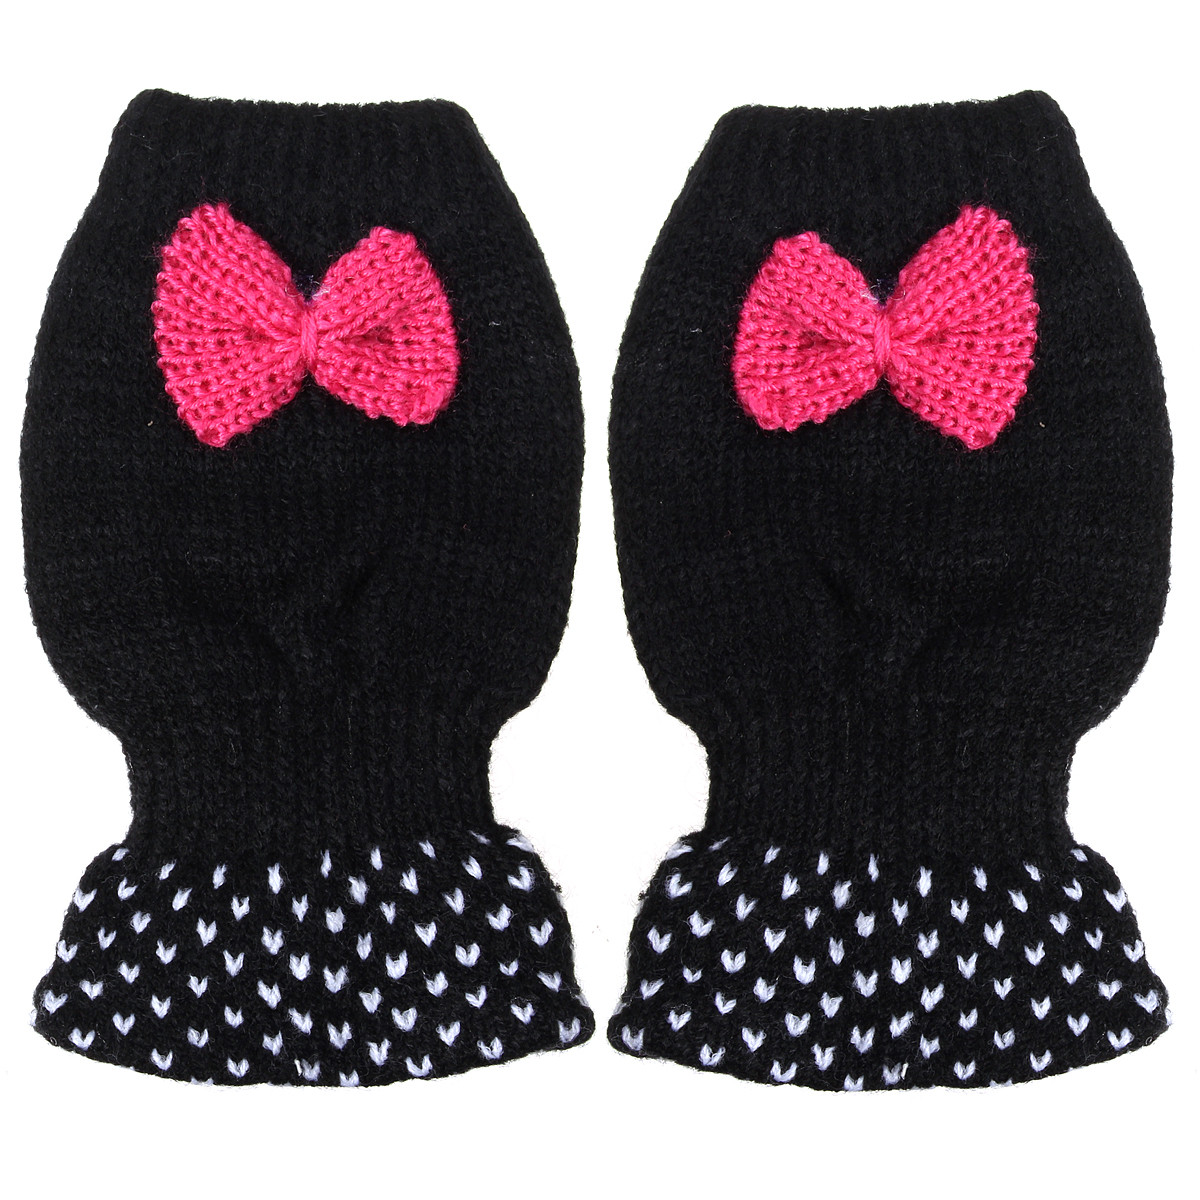 Women Ladies Cute Crochet Knitted Fingerless Gloves Hand Wrist Bowknot Mittens